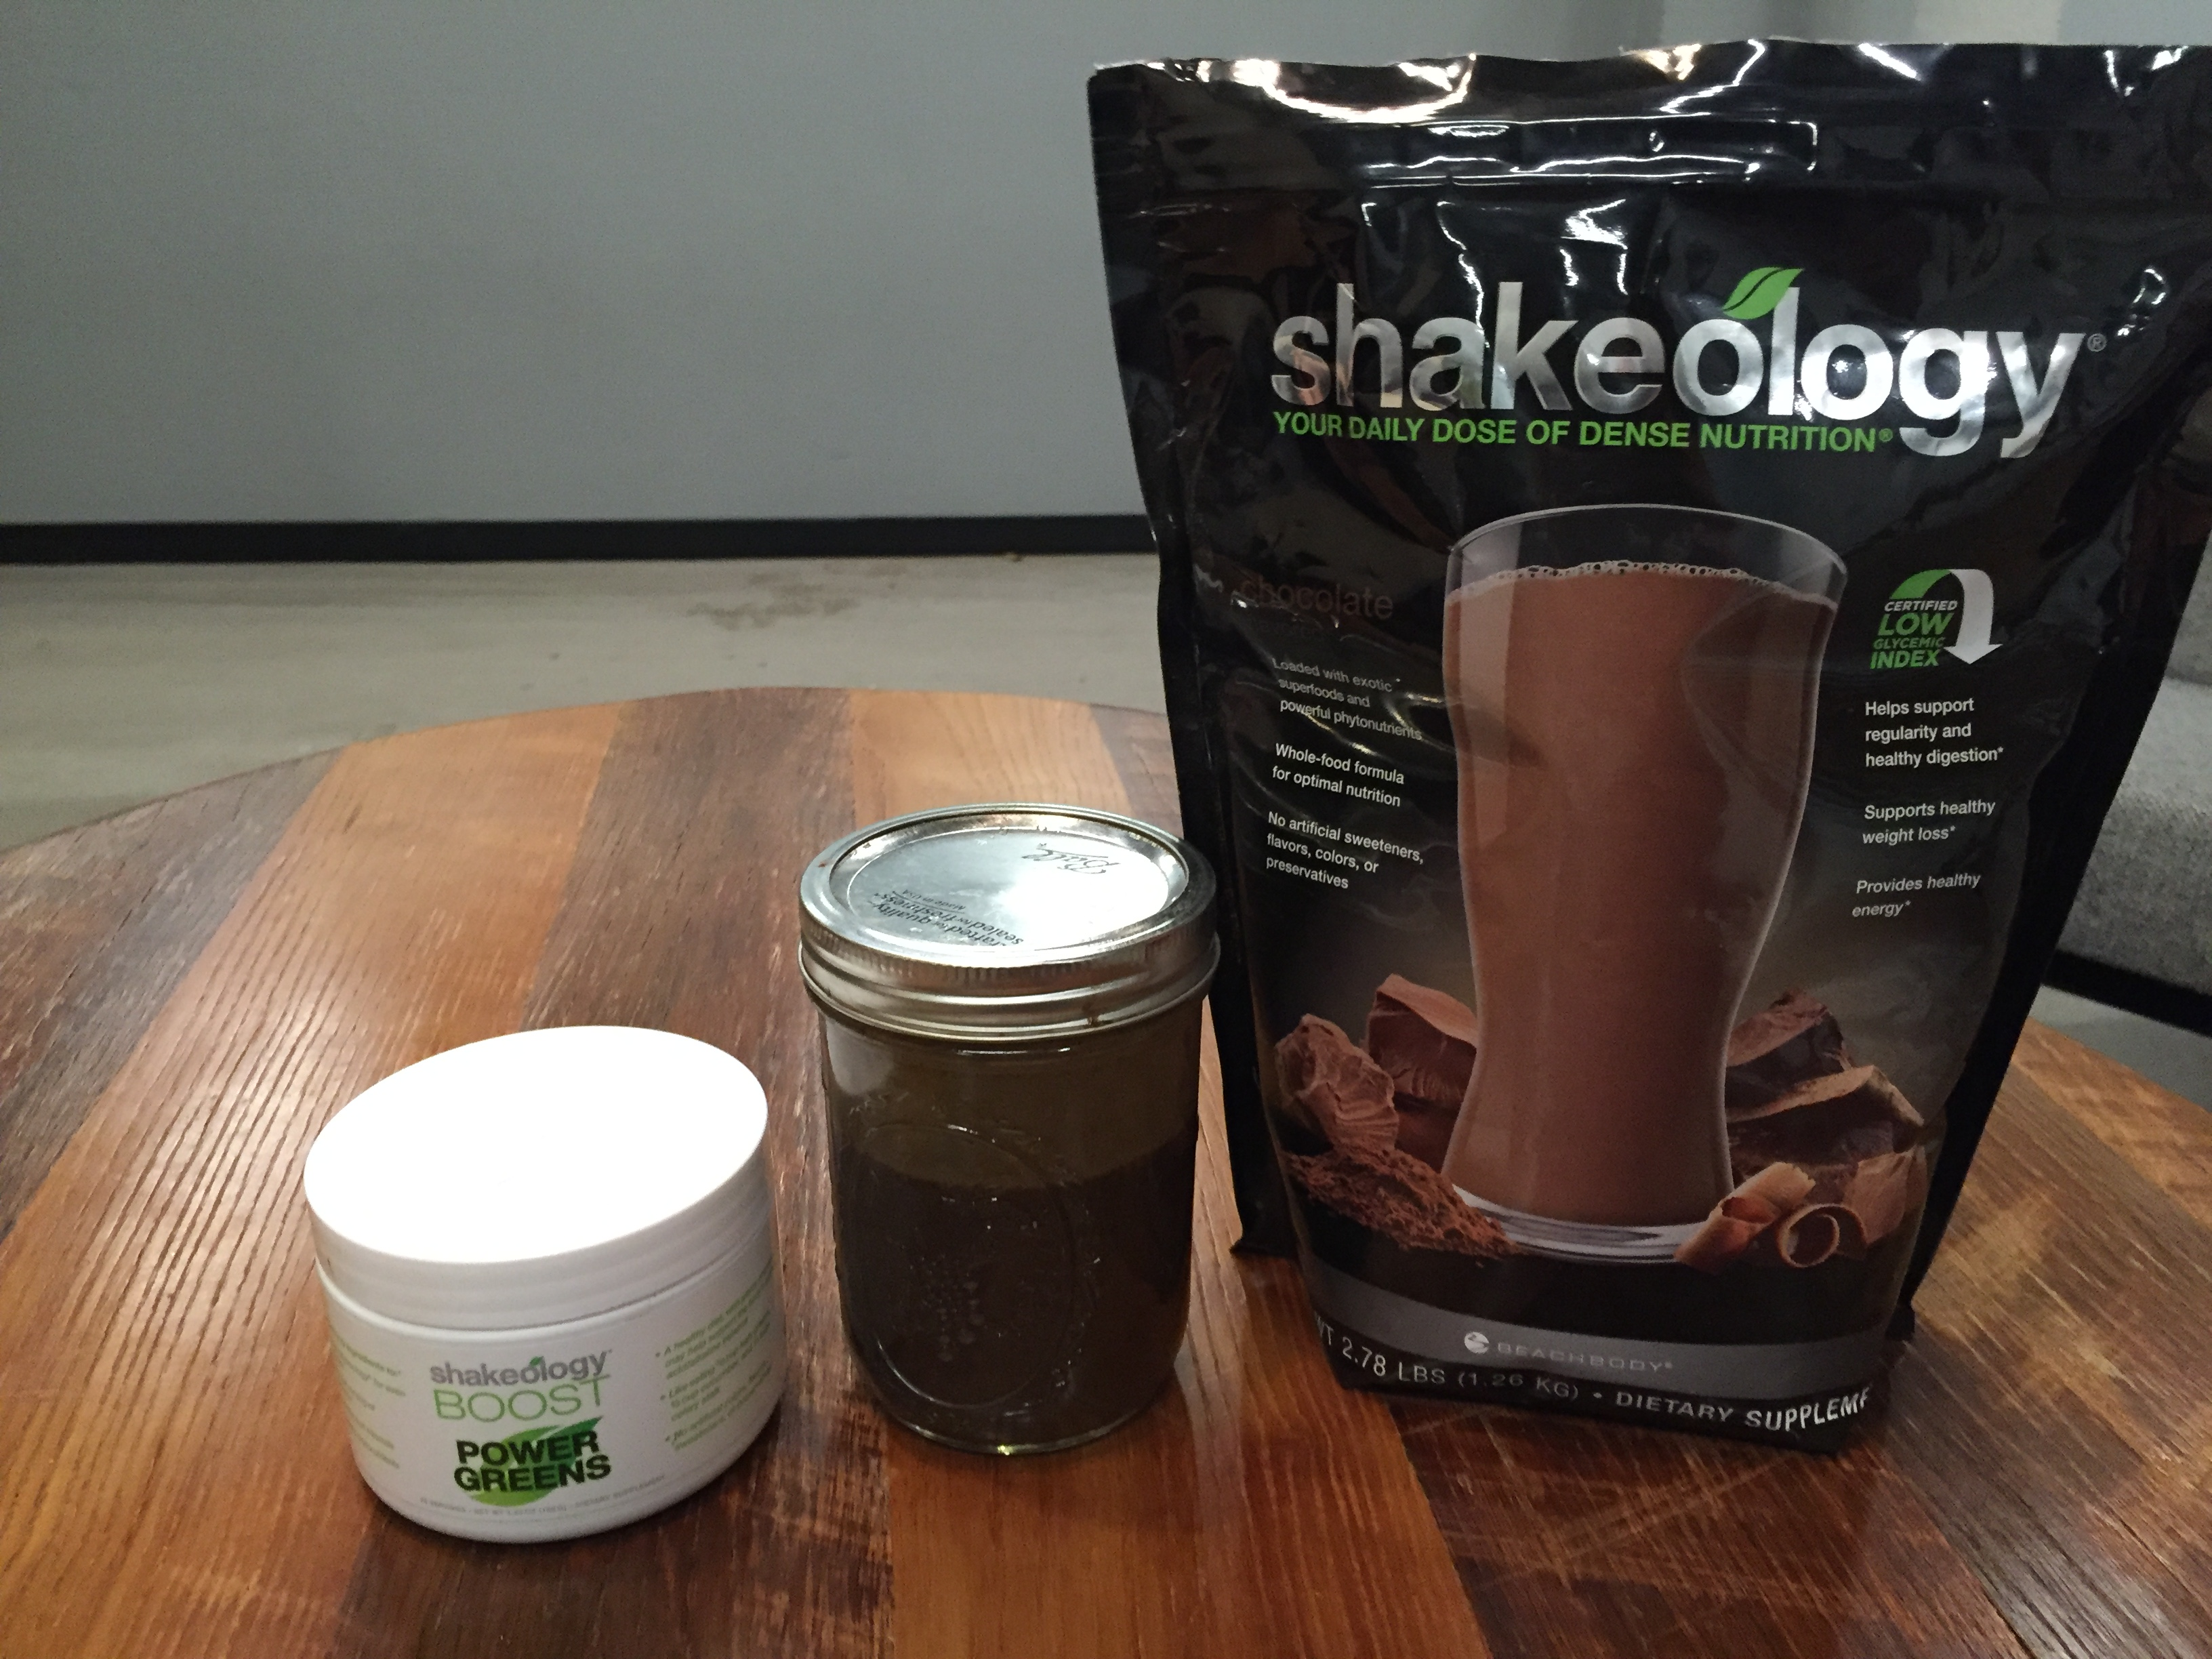 Shakeology Power Greens Boost Review